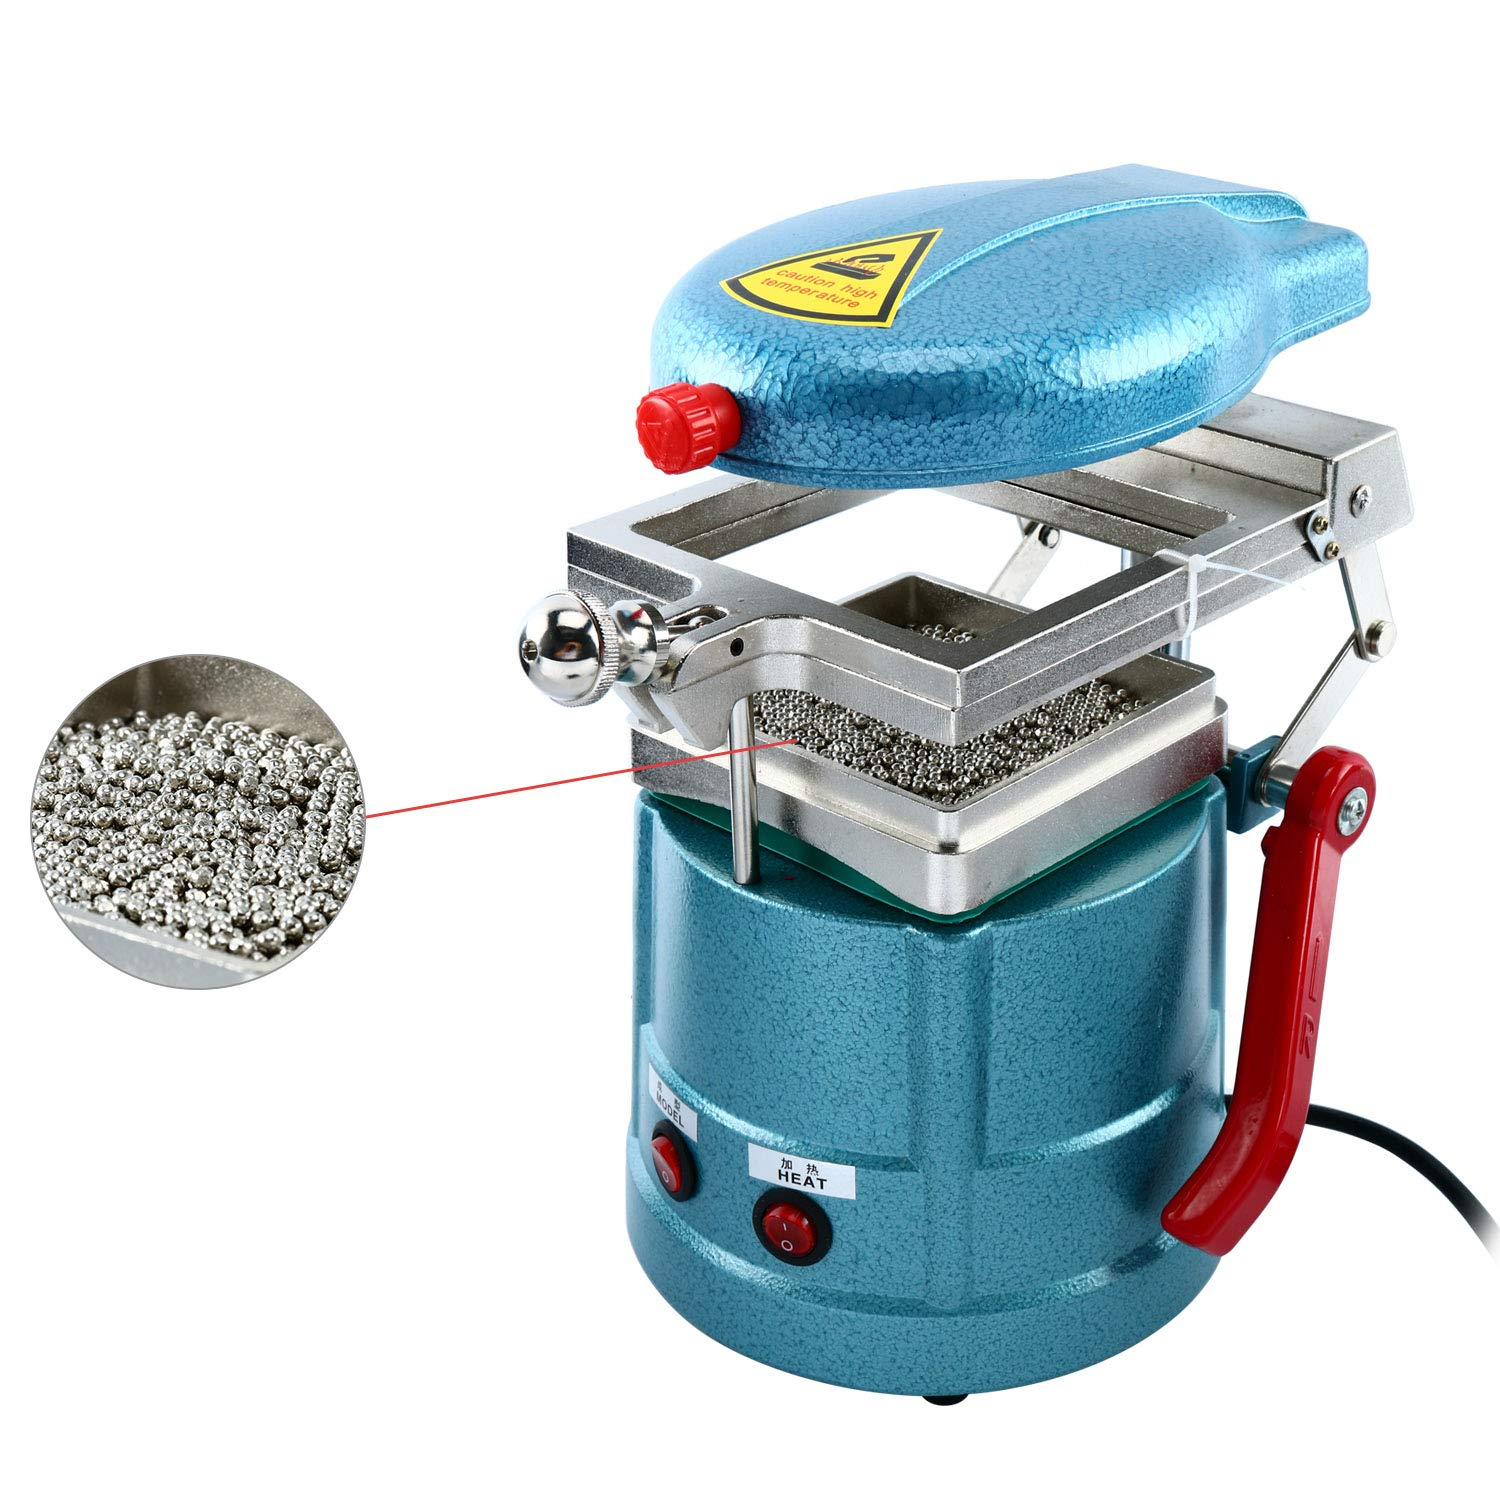 Dental Vacuum Forming Machine Power Former Heat Molding Tool w/Steel Balls Lab Equipment